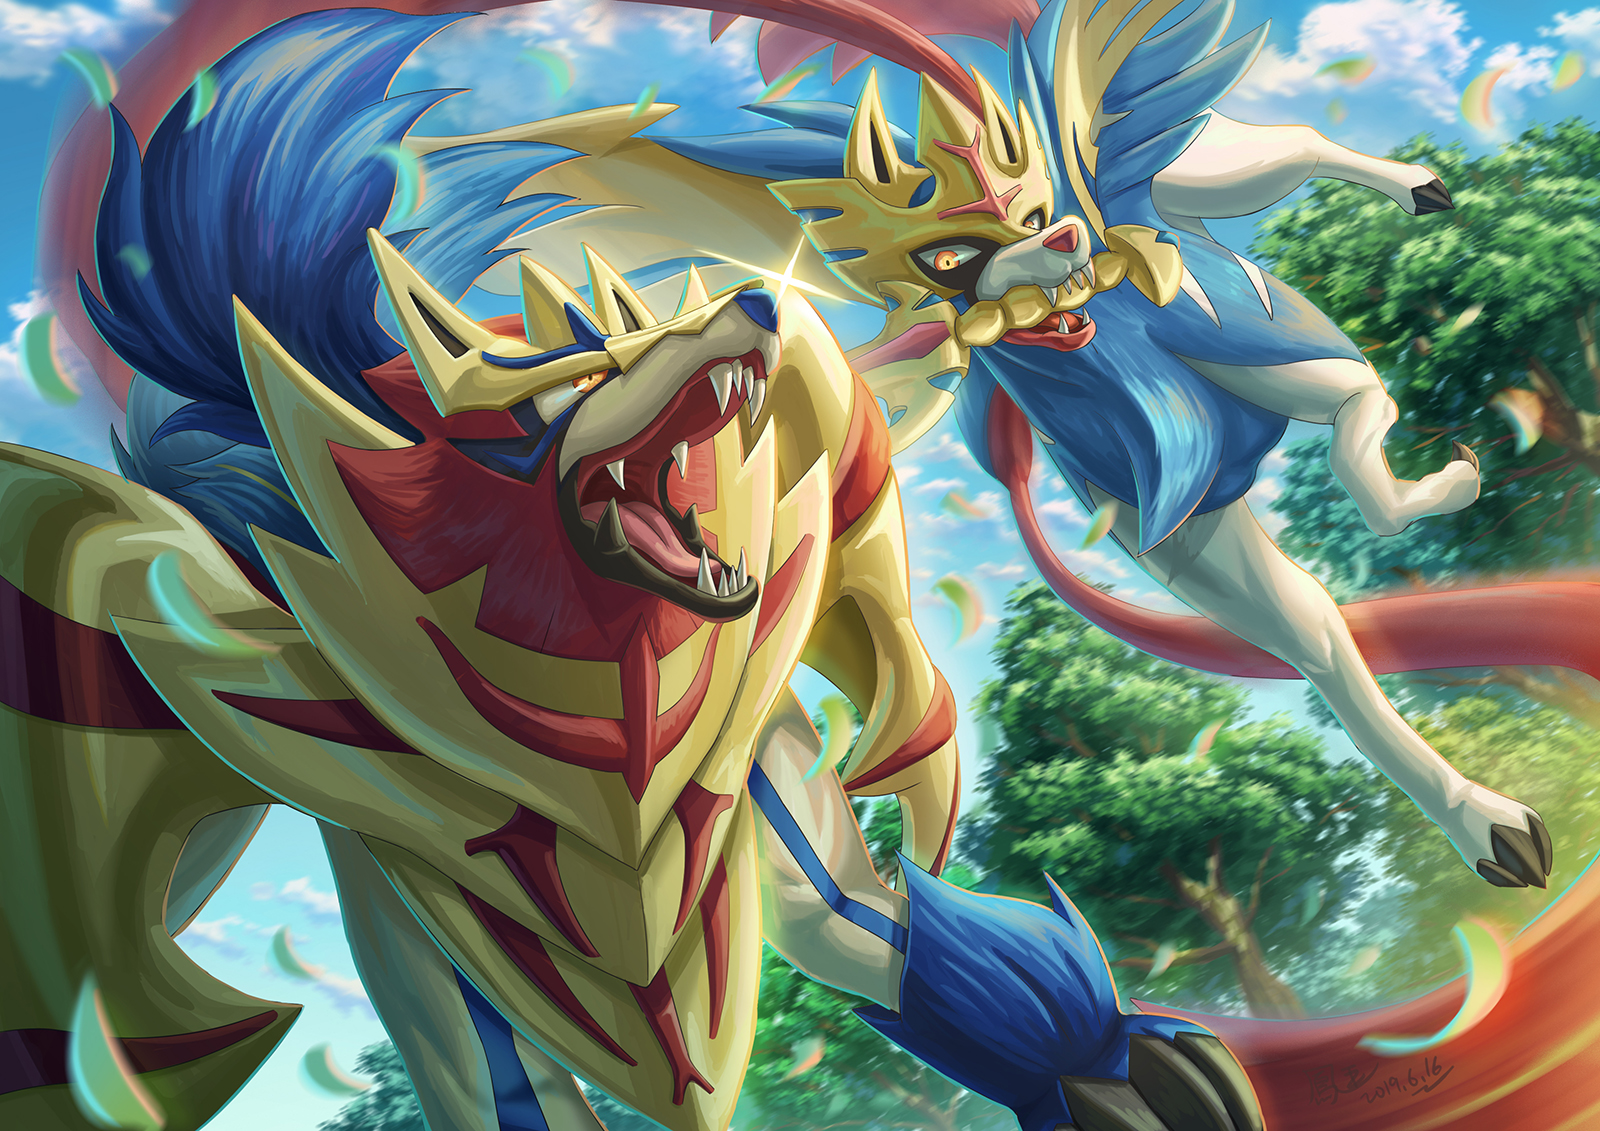 Zacian Moveset In Pokémon Go- Weakness And How To Beat